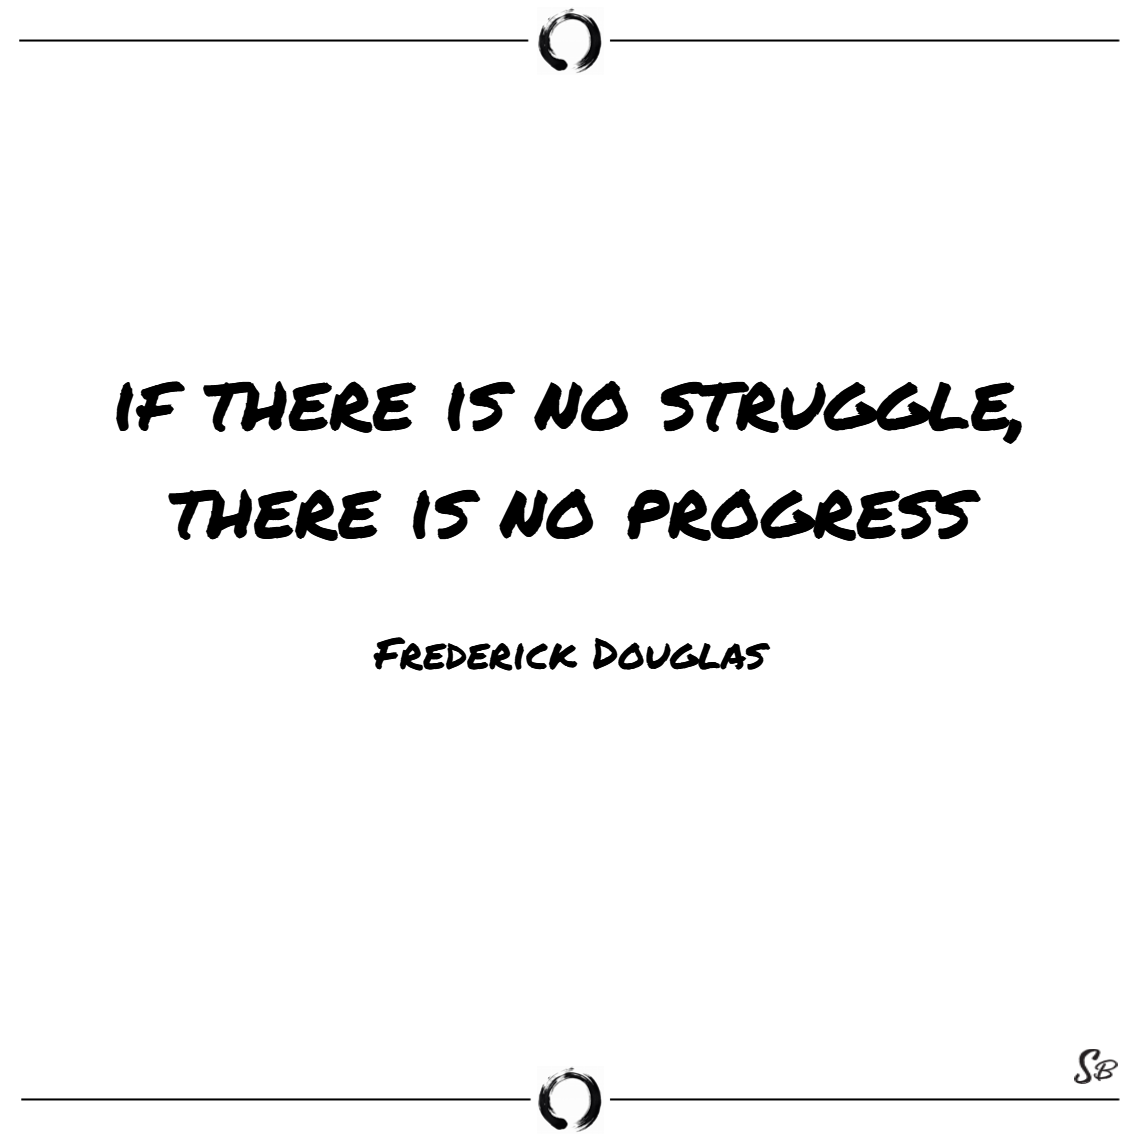 If there is no struggle, there is no progress. – frederick douglass